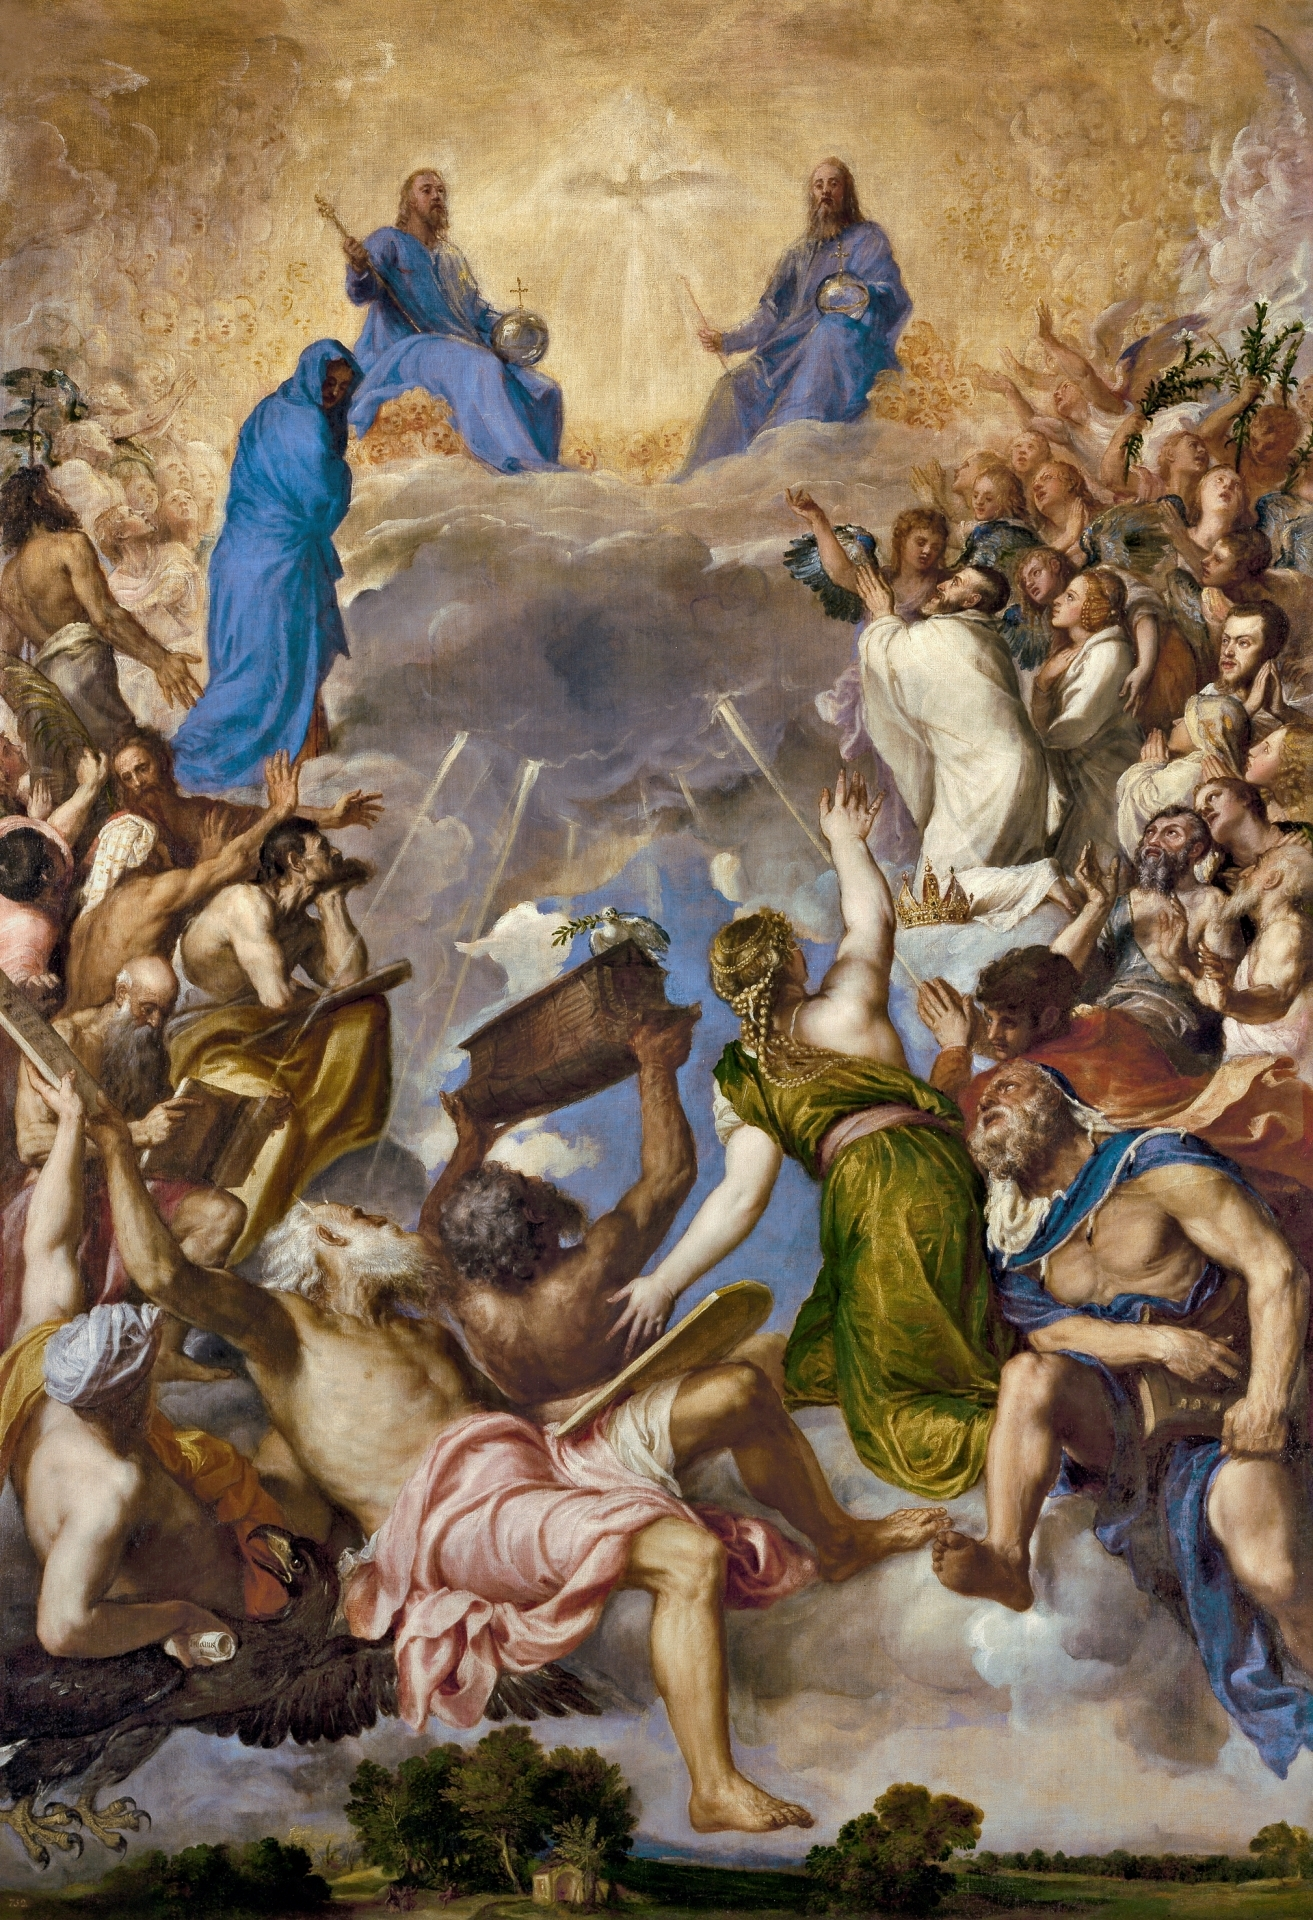 The Glory, Titian